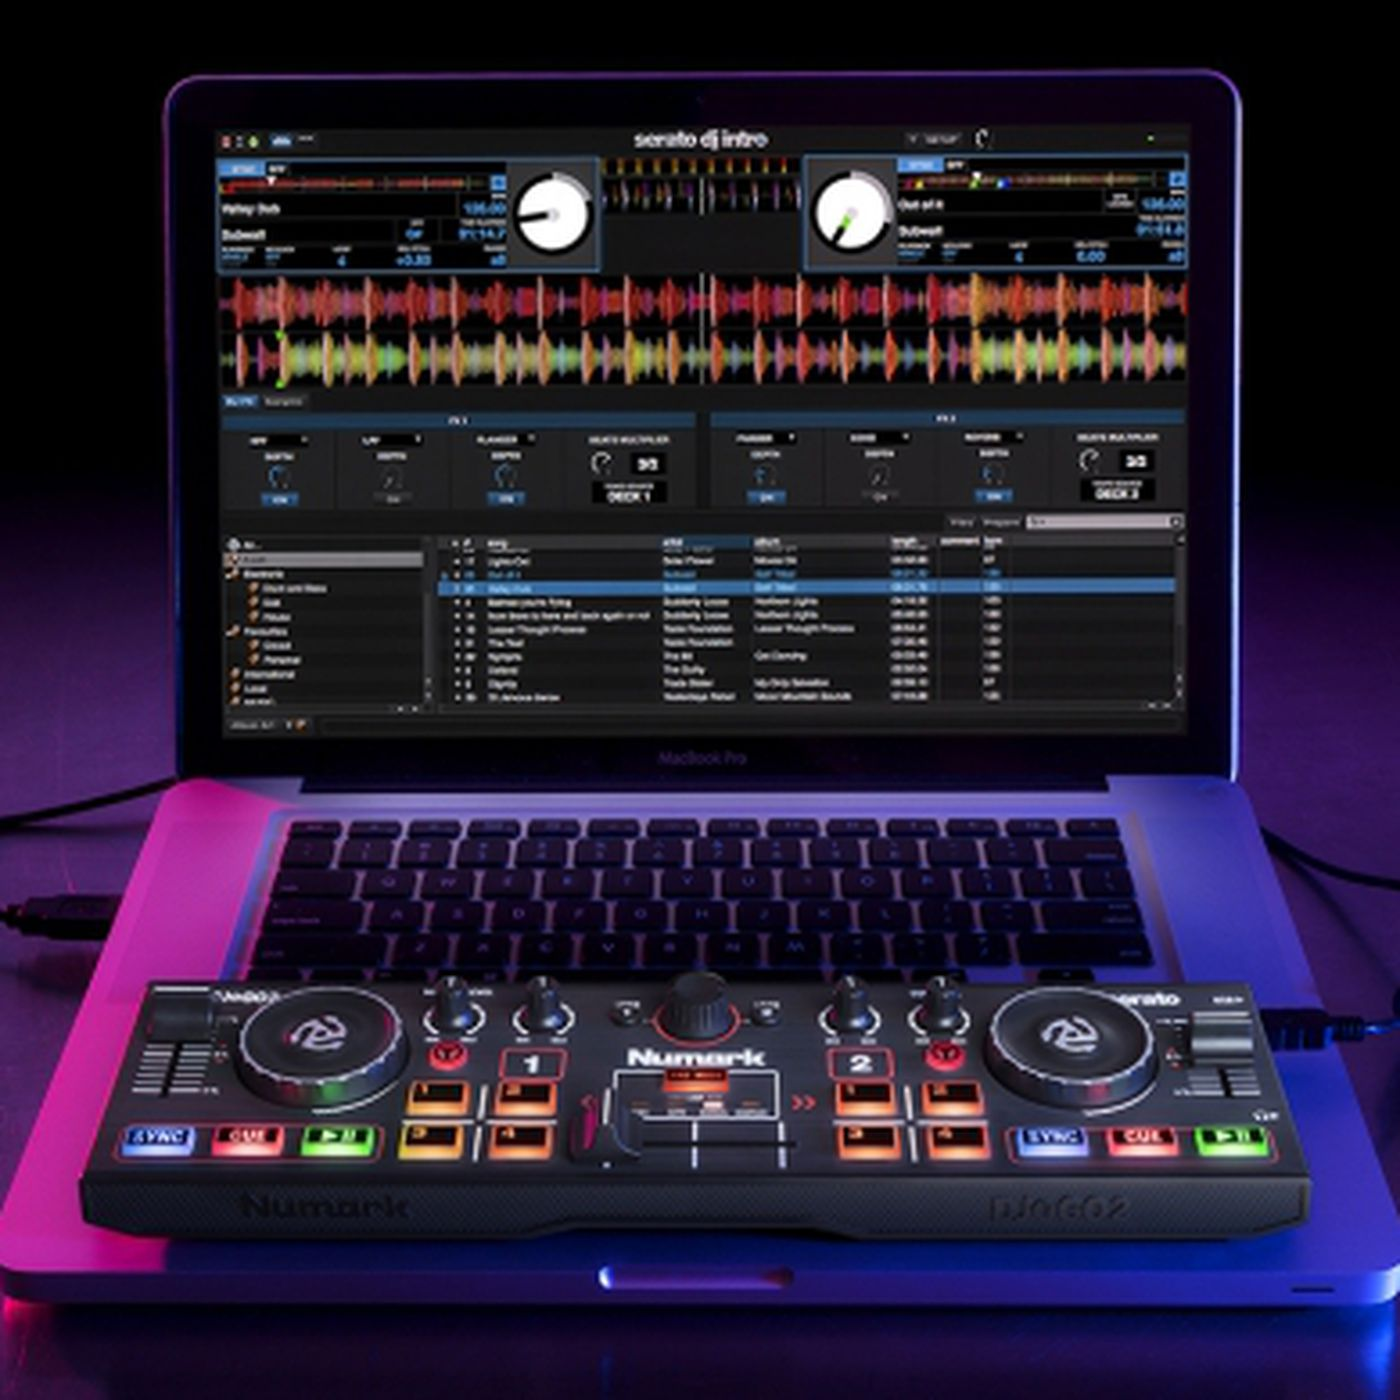 This is the smallest full-featured DJ controller on the market - The